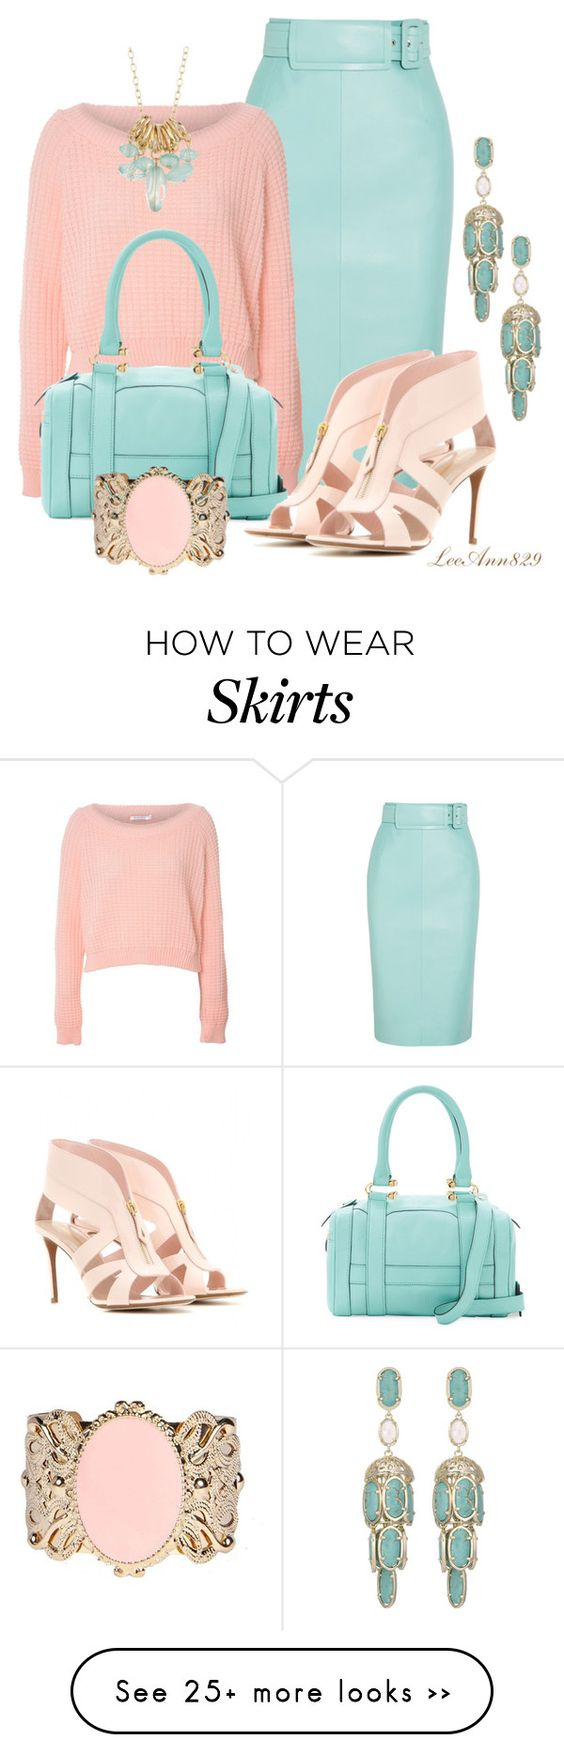 """jumper and skirt contest"" by leeann829 on Polyvore featuring moda, Balenciaga, Glamorous, MY SUELLY, Kendra Scott, Nicholas Kirkwood e 14th & Union"